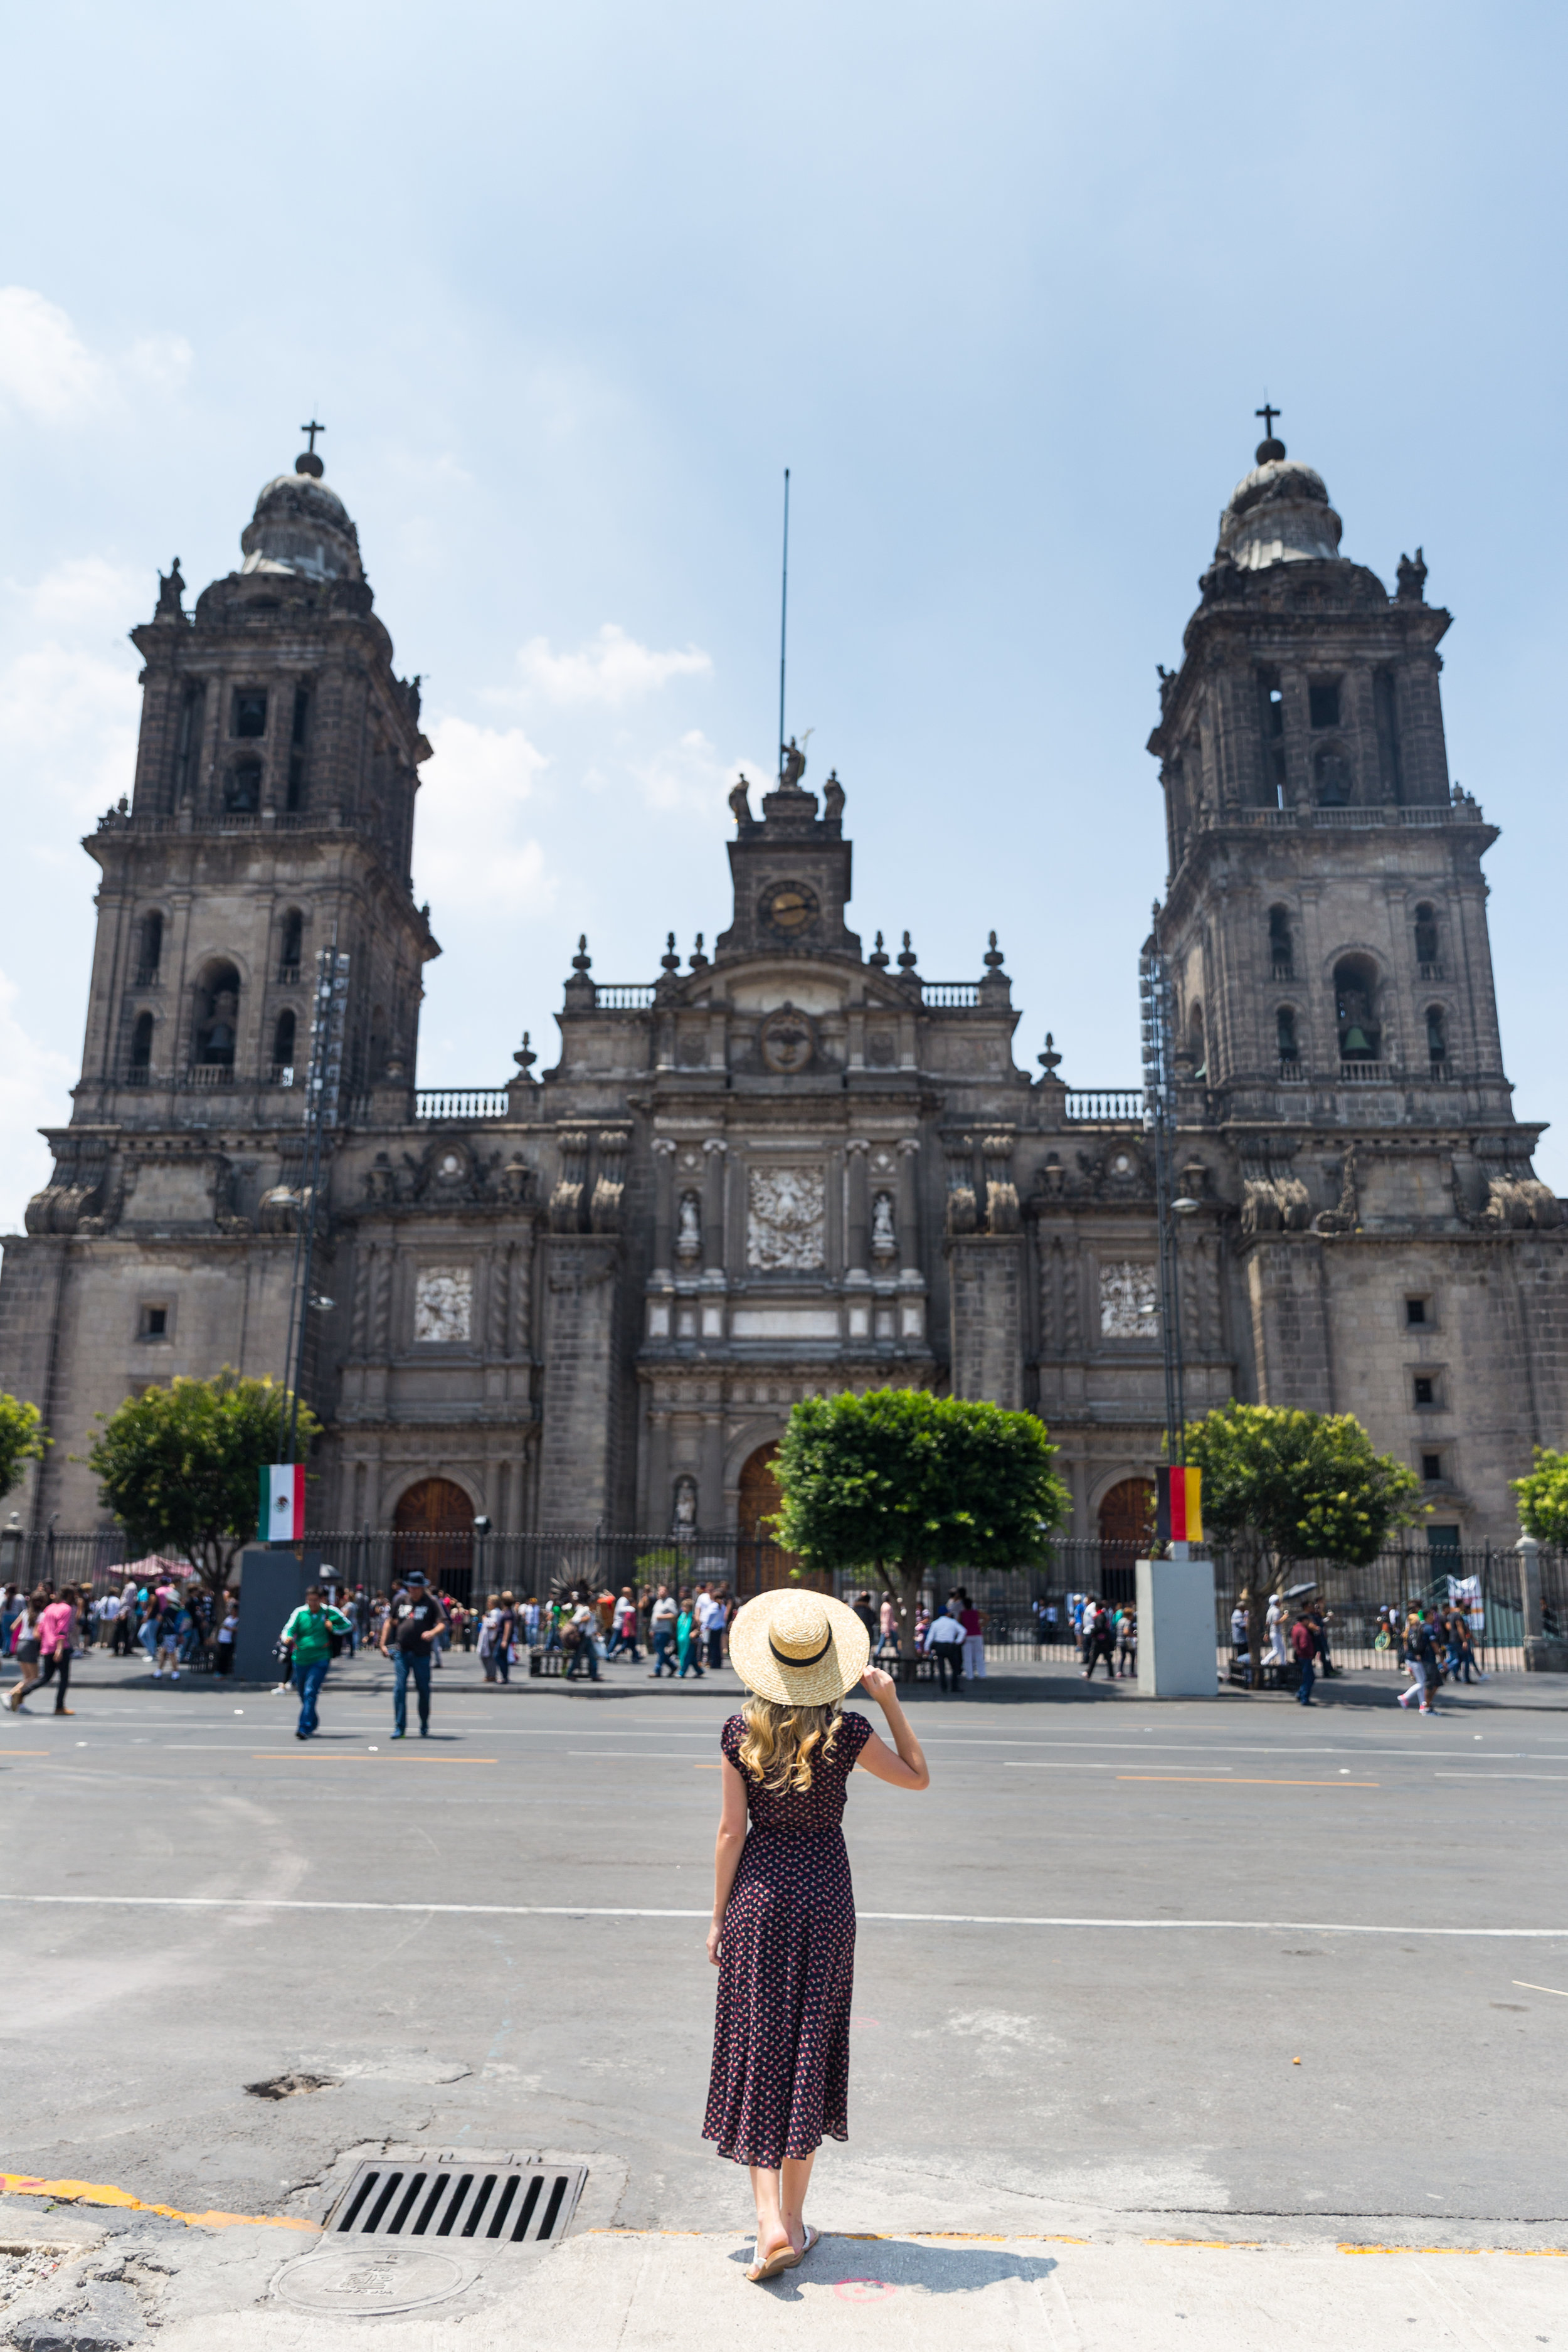 Mexico City Centro Historico Summer Outfit Pattern Wrap Dress_-5.jpg